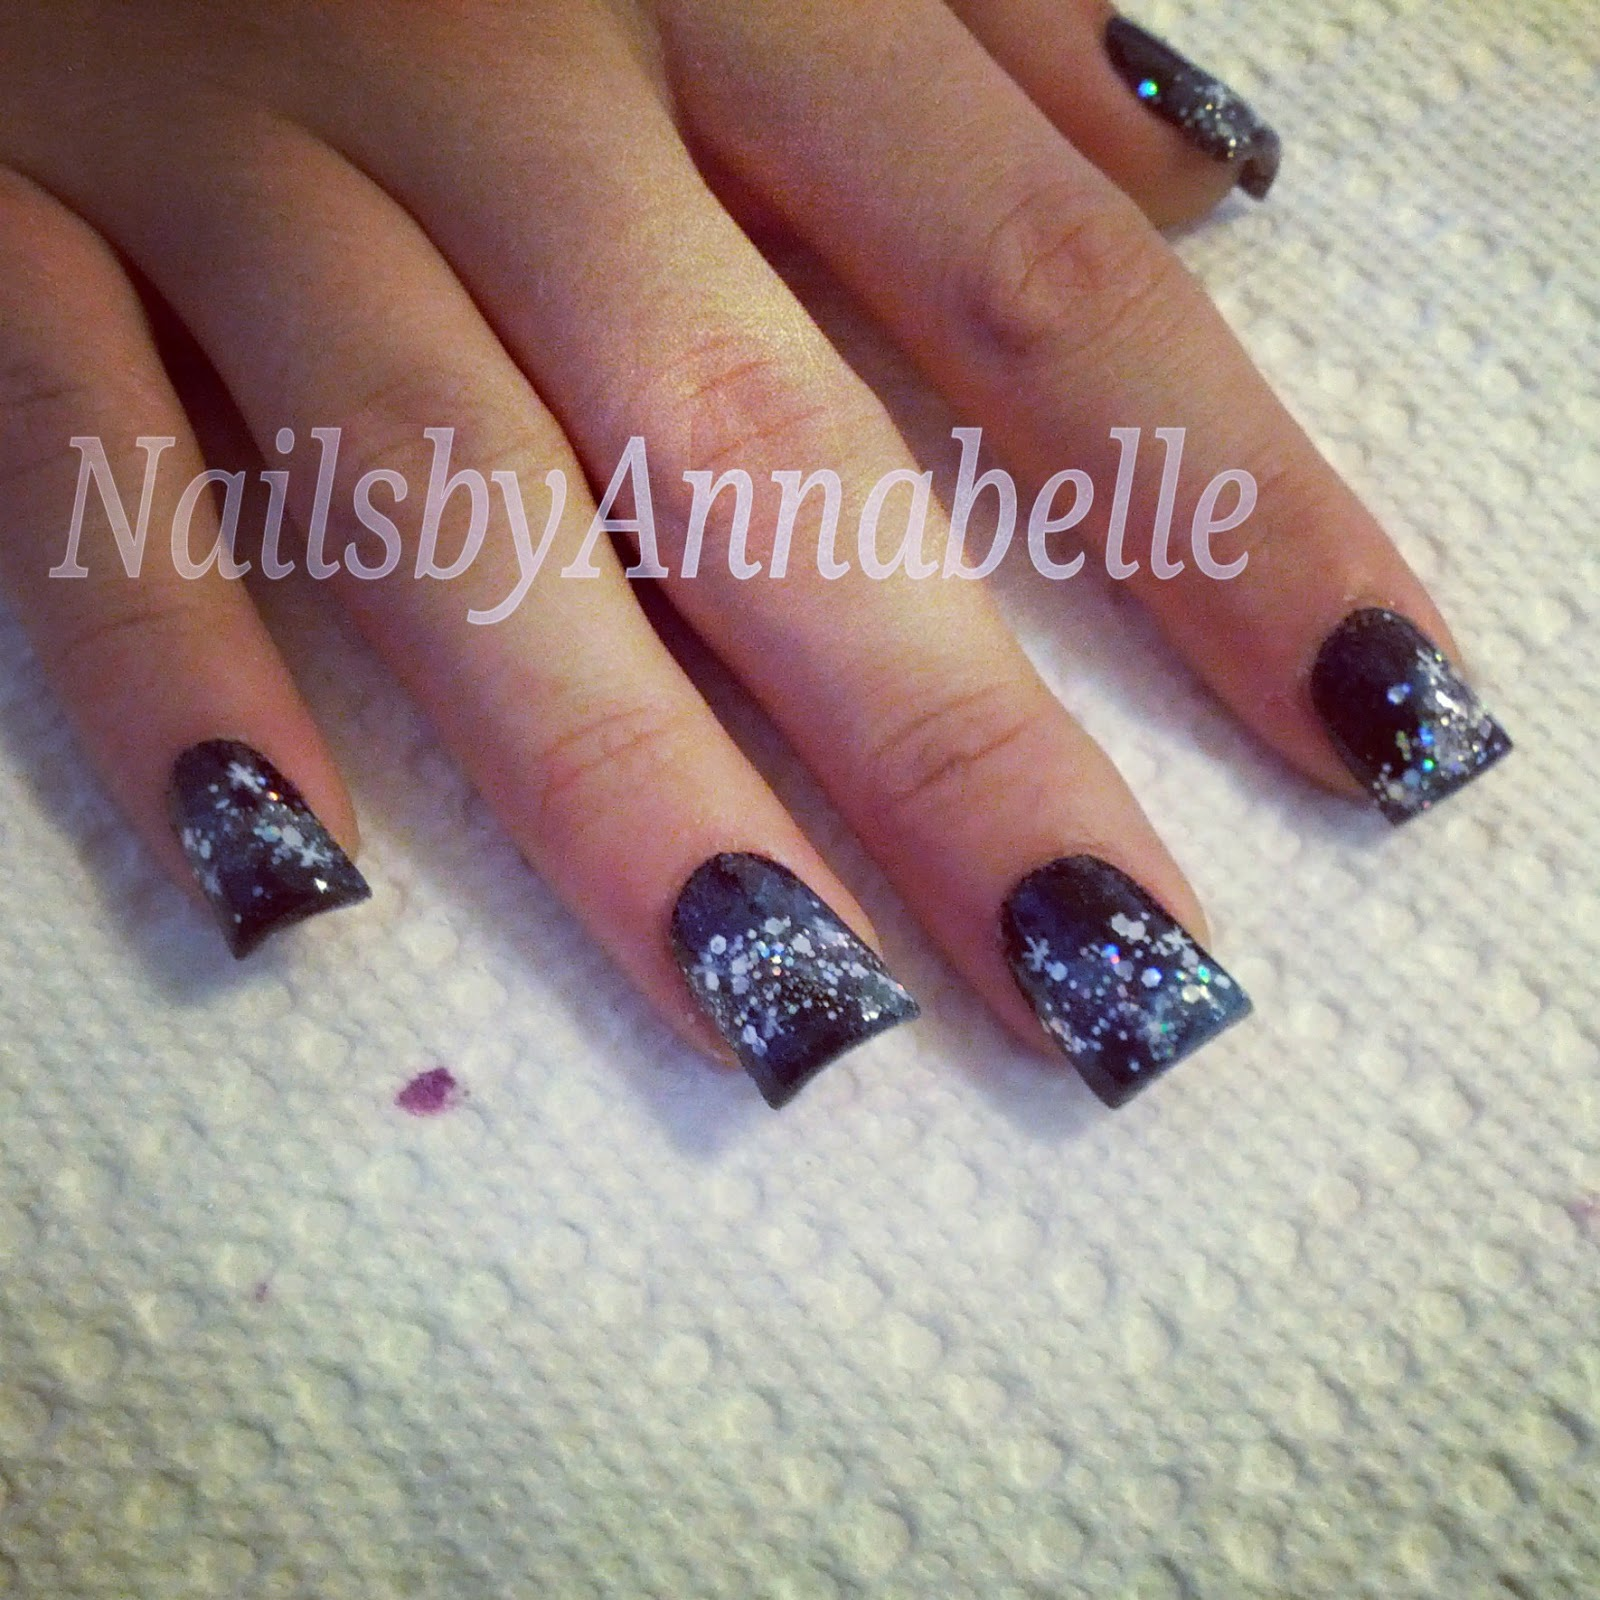 Nails, hair and beauty by Annabelle: Epic Galaxy set